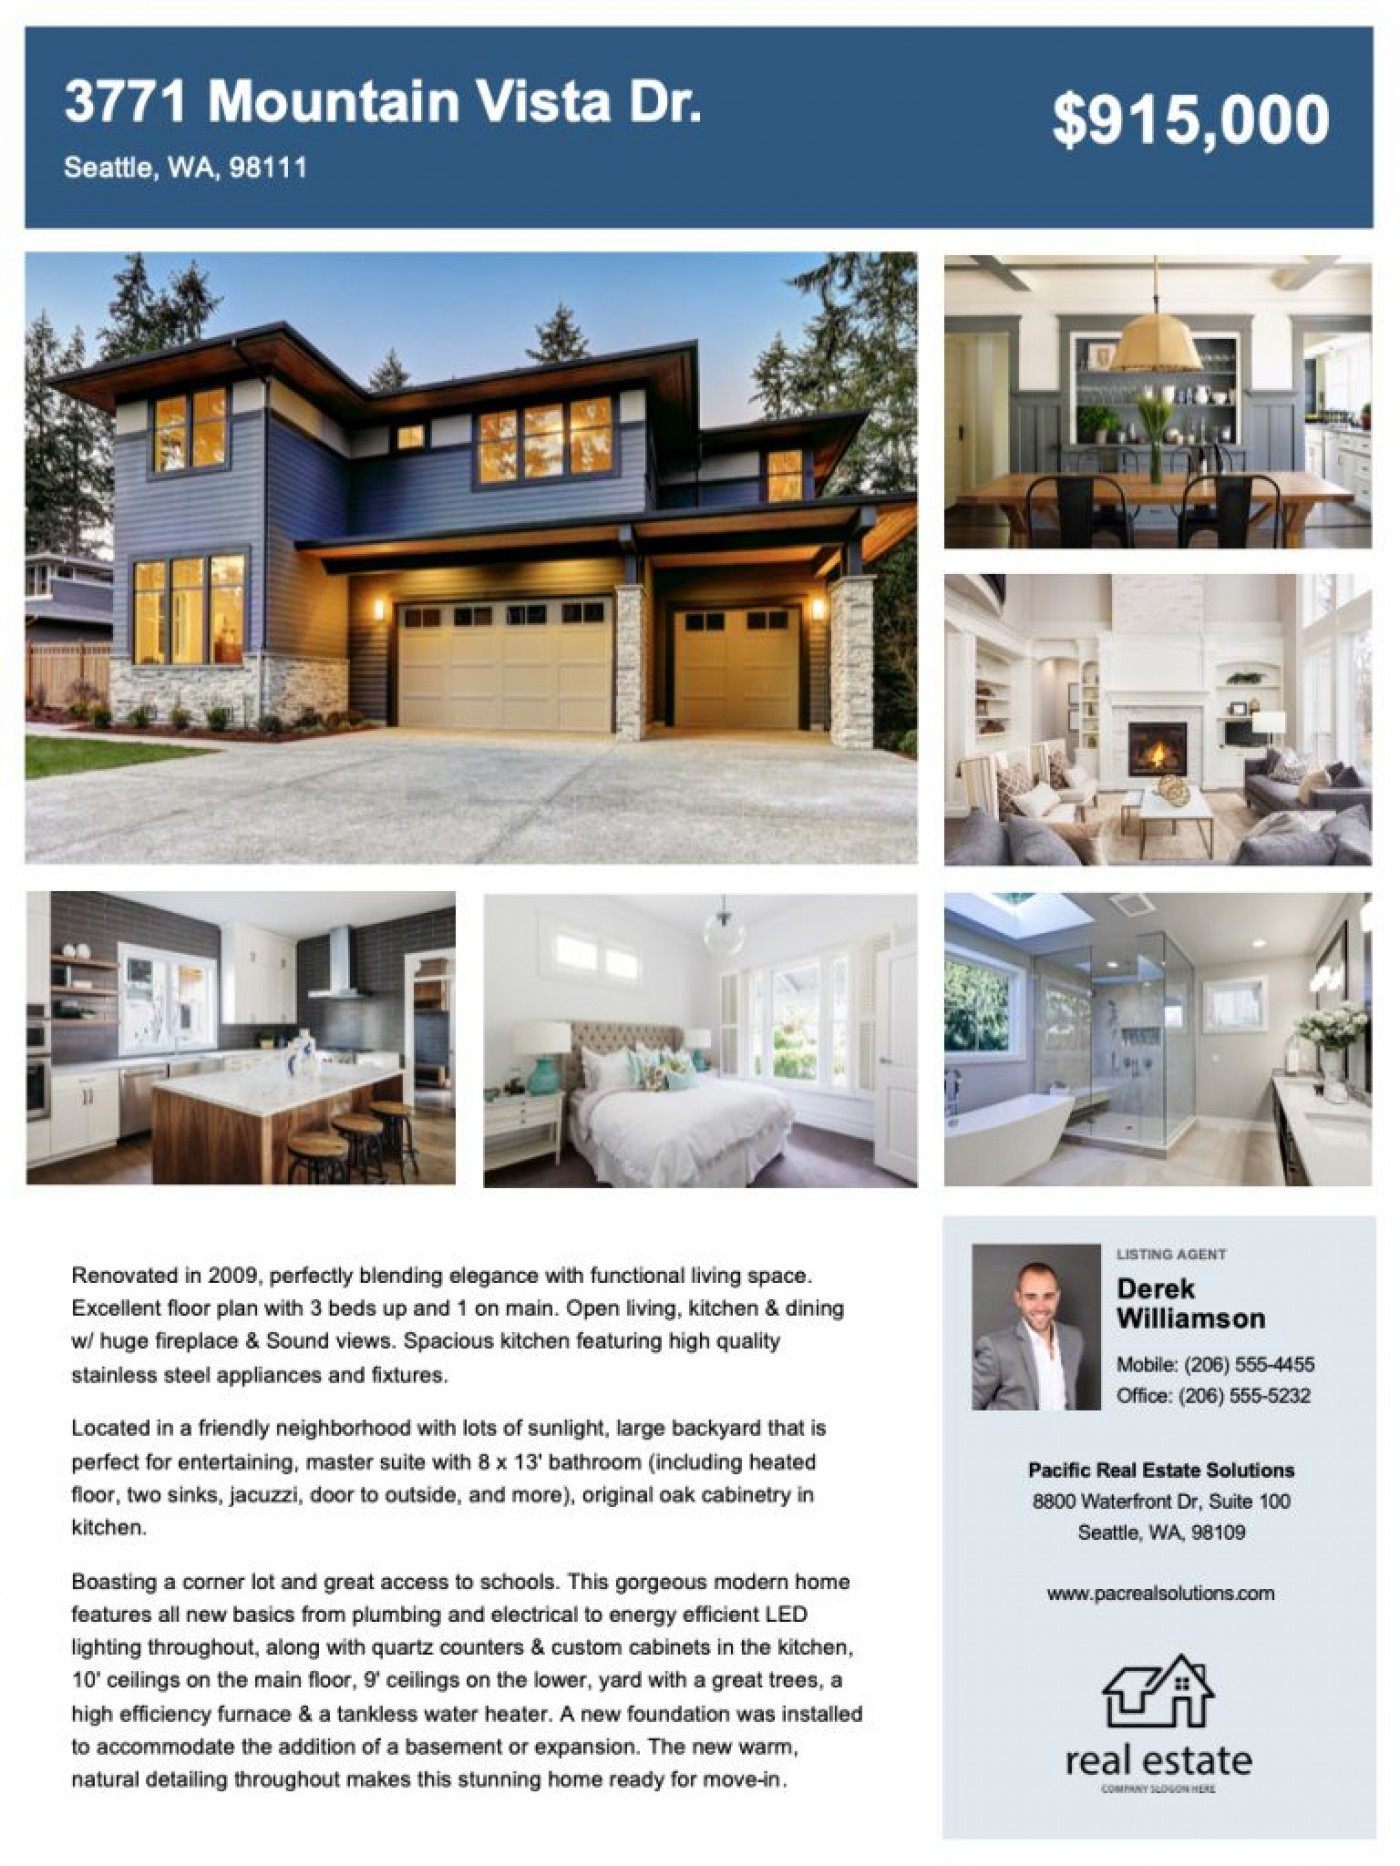 009 Striking House For Sale Flyer Template Inspiration  Free Real Estate Example By Owner1400